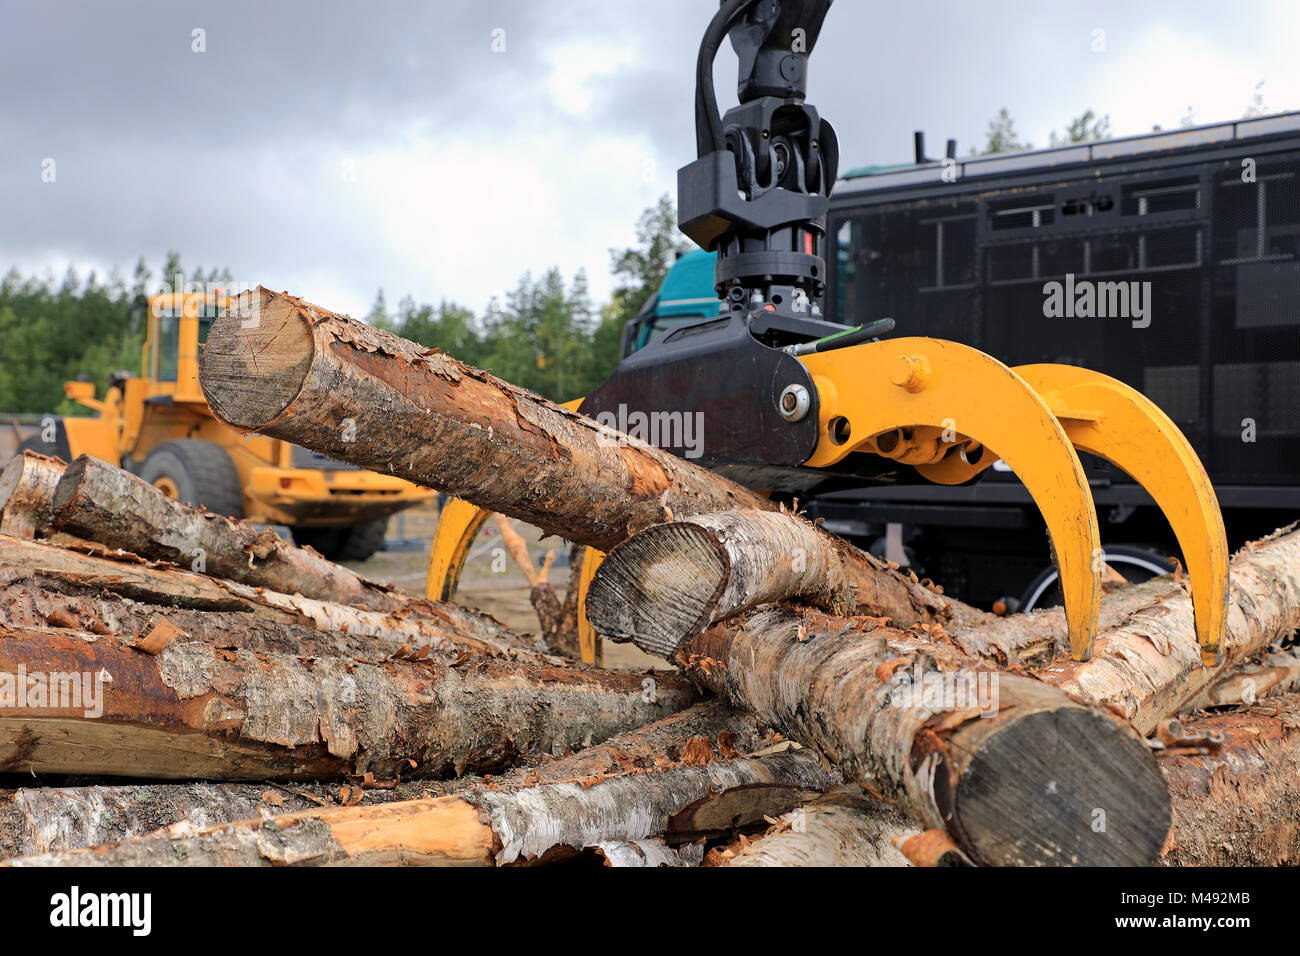 Log loader grapple attachment unloads wooden logs at a work site with heavy machinery on the background. - Stock Image